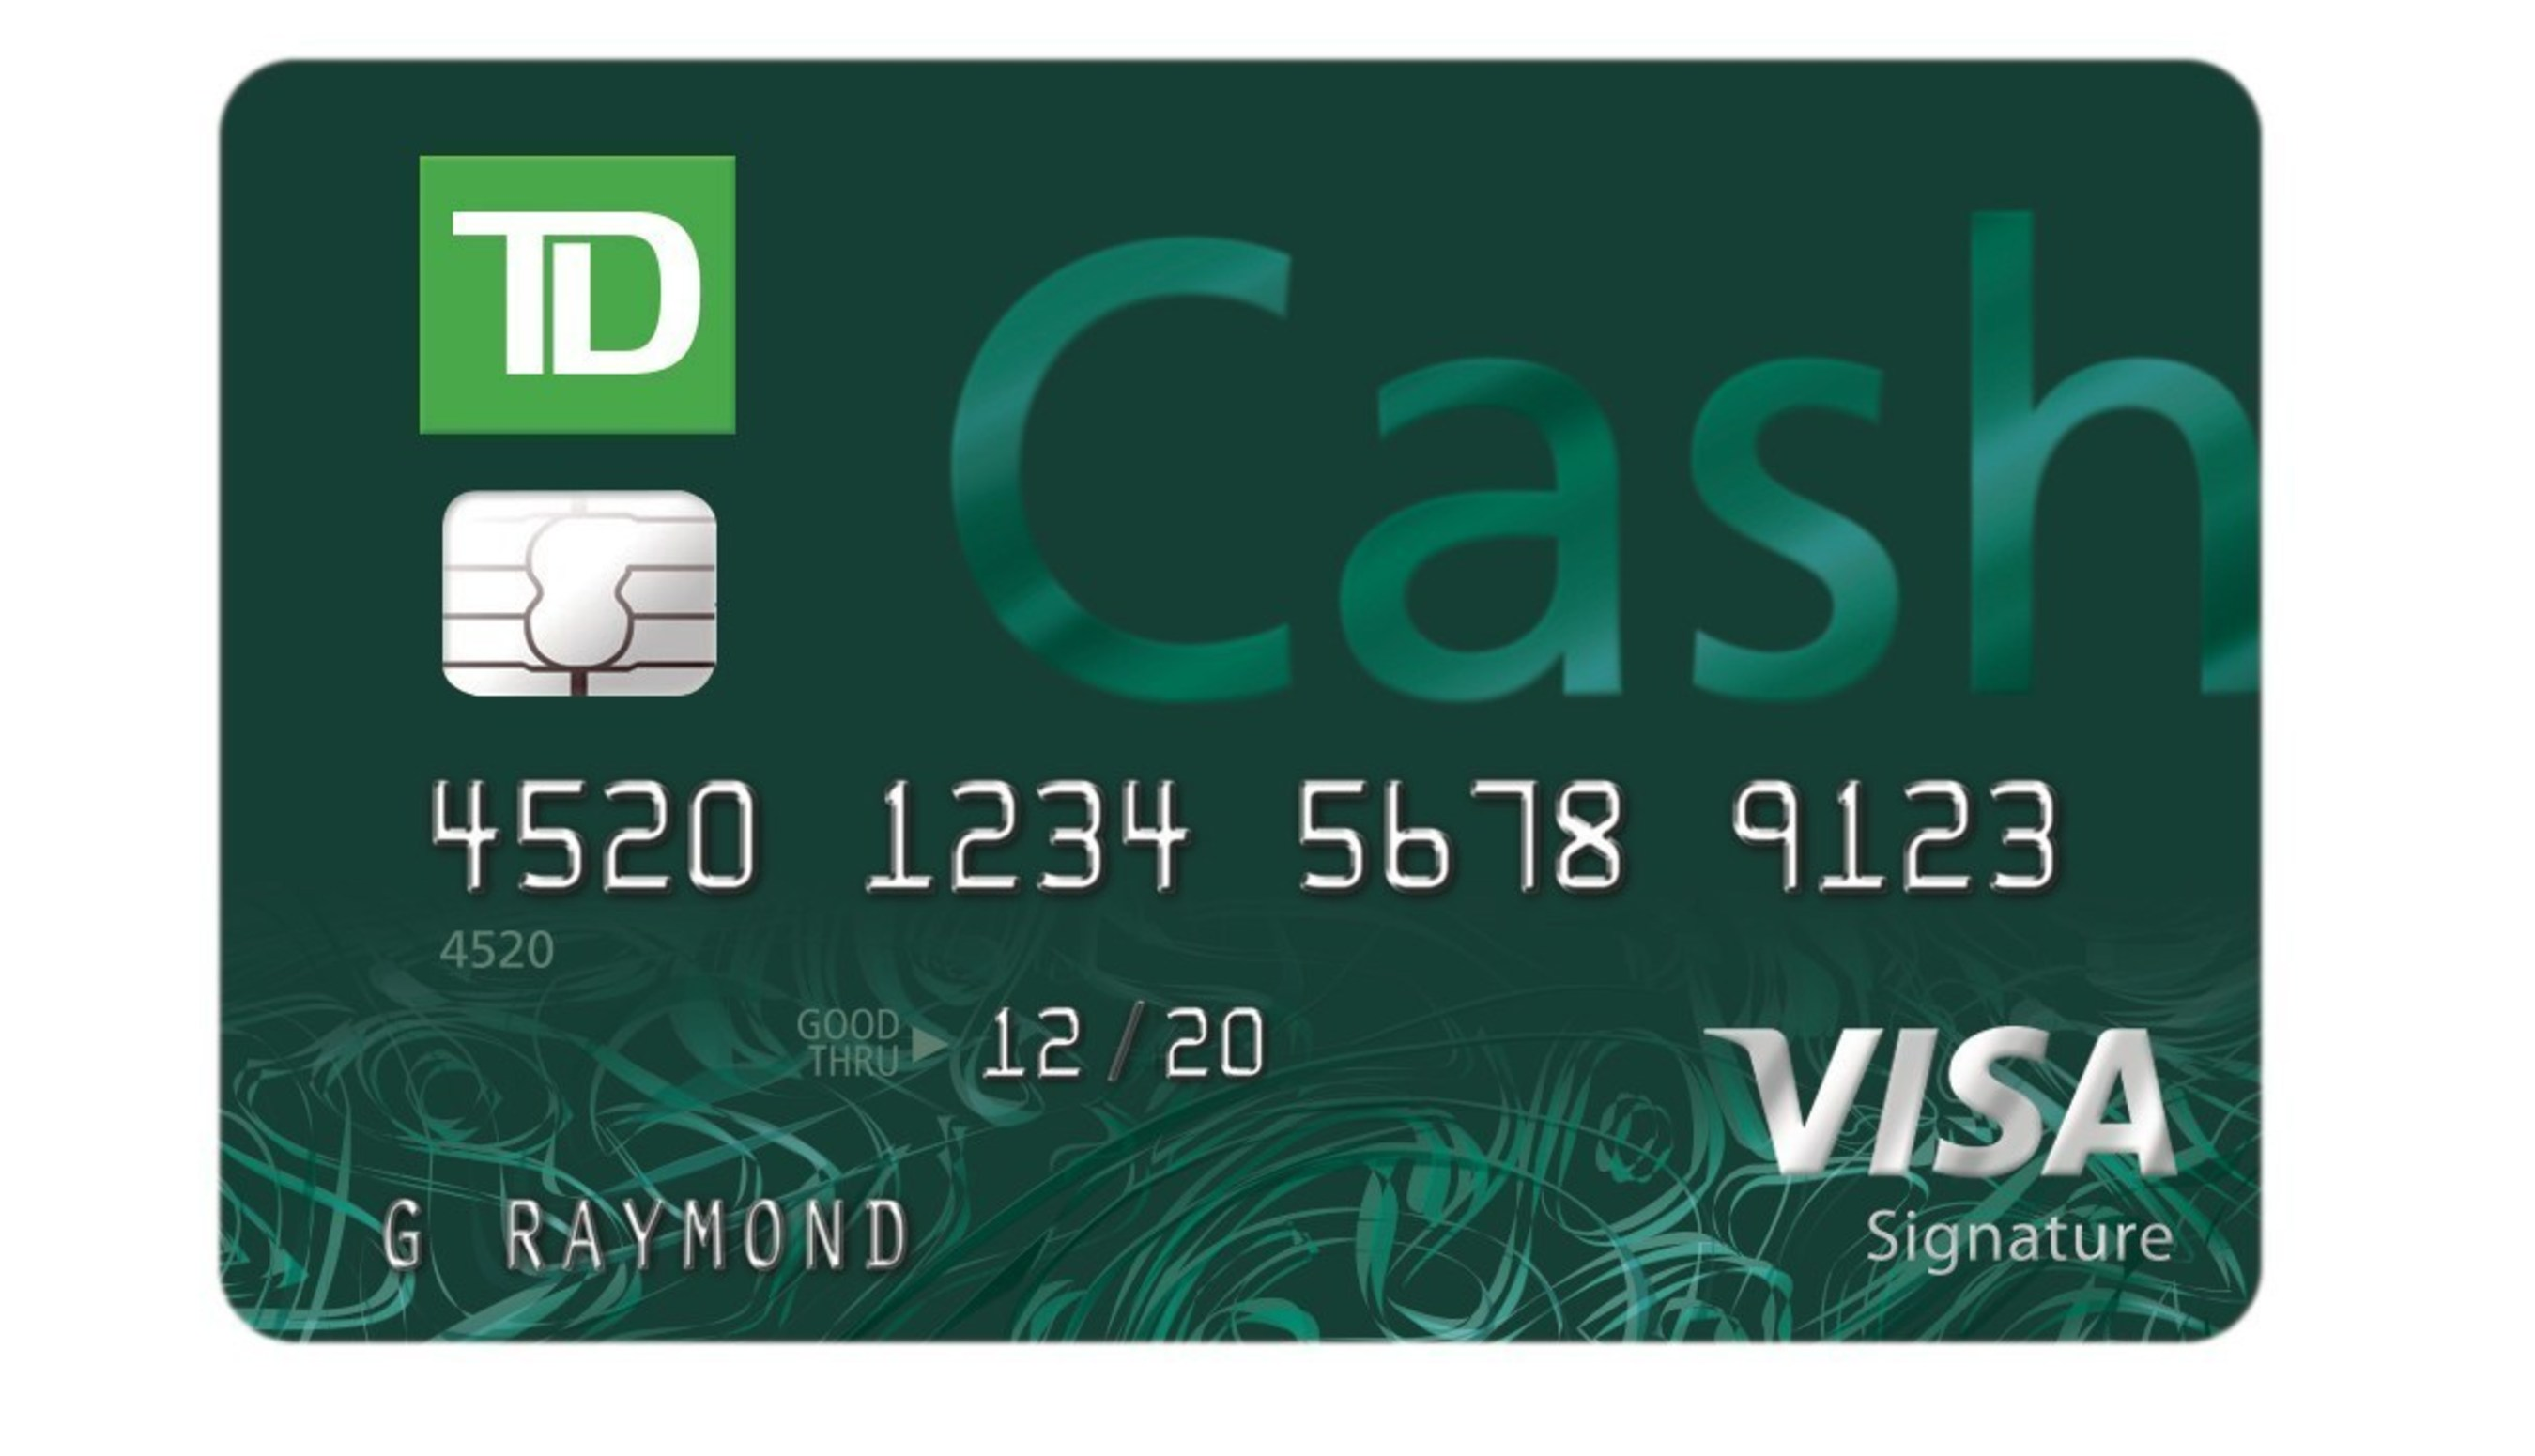 Td Visa Rewards >> Td Bank Launches New Cash Rewards Credit Card